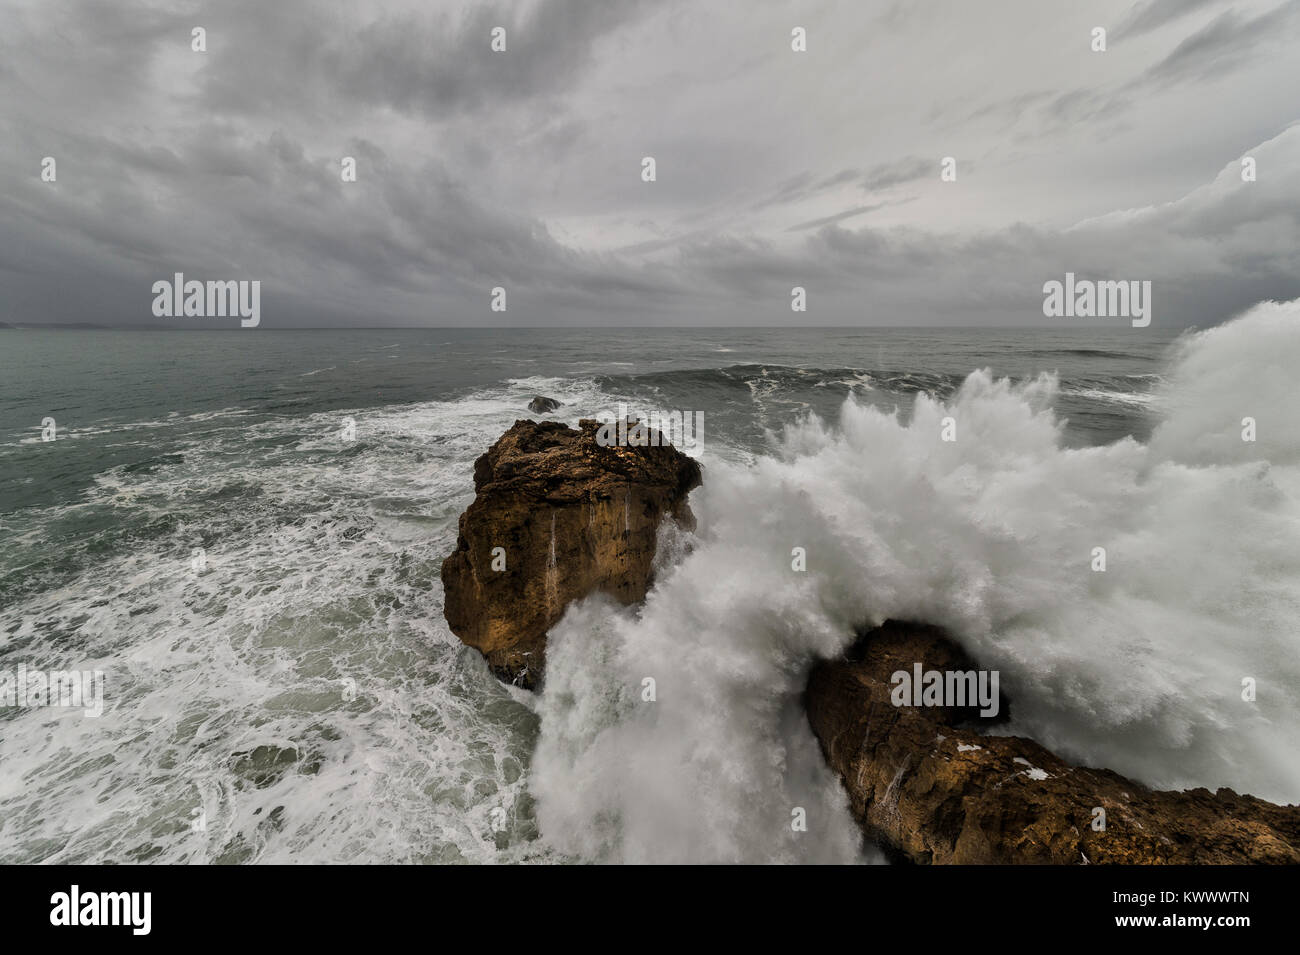 crashing waves with a moody sky at Farol da nazare - Stock Image